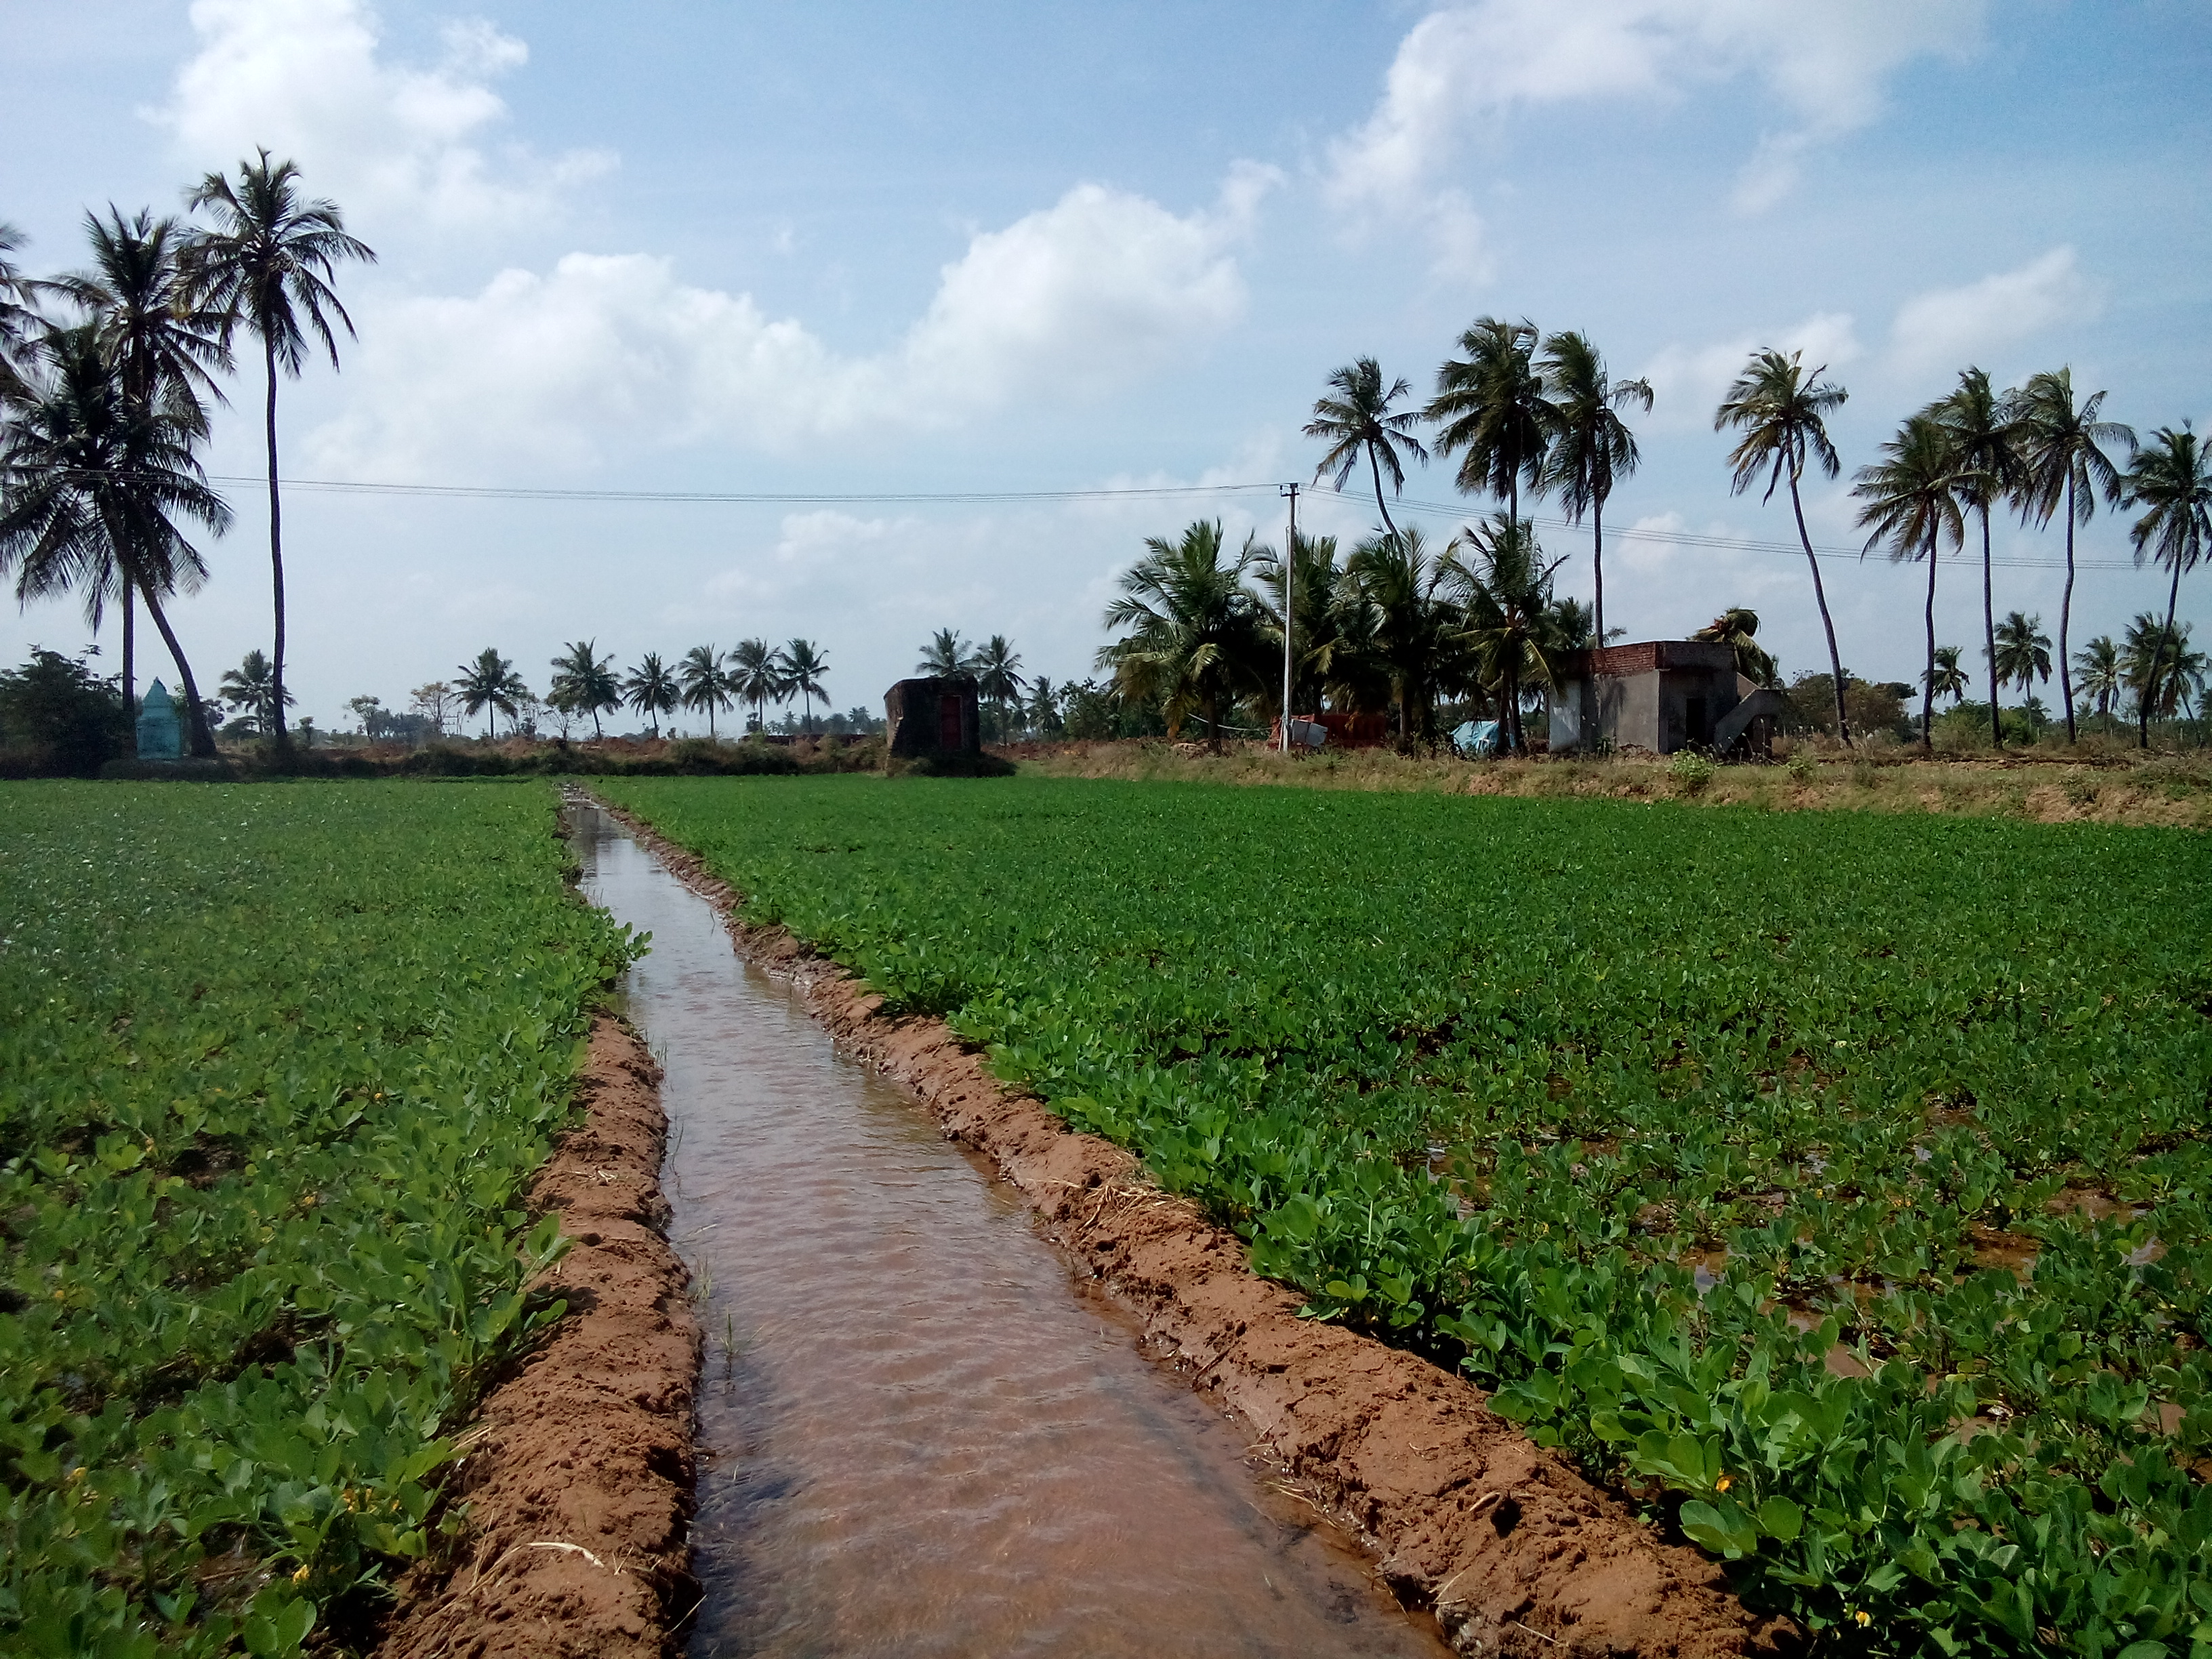 File:Peanuts ditch irrigation inid india.jpg - Wikimedia Commons